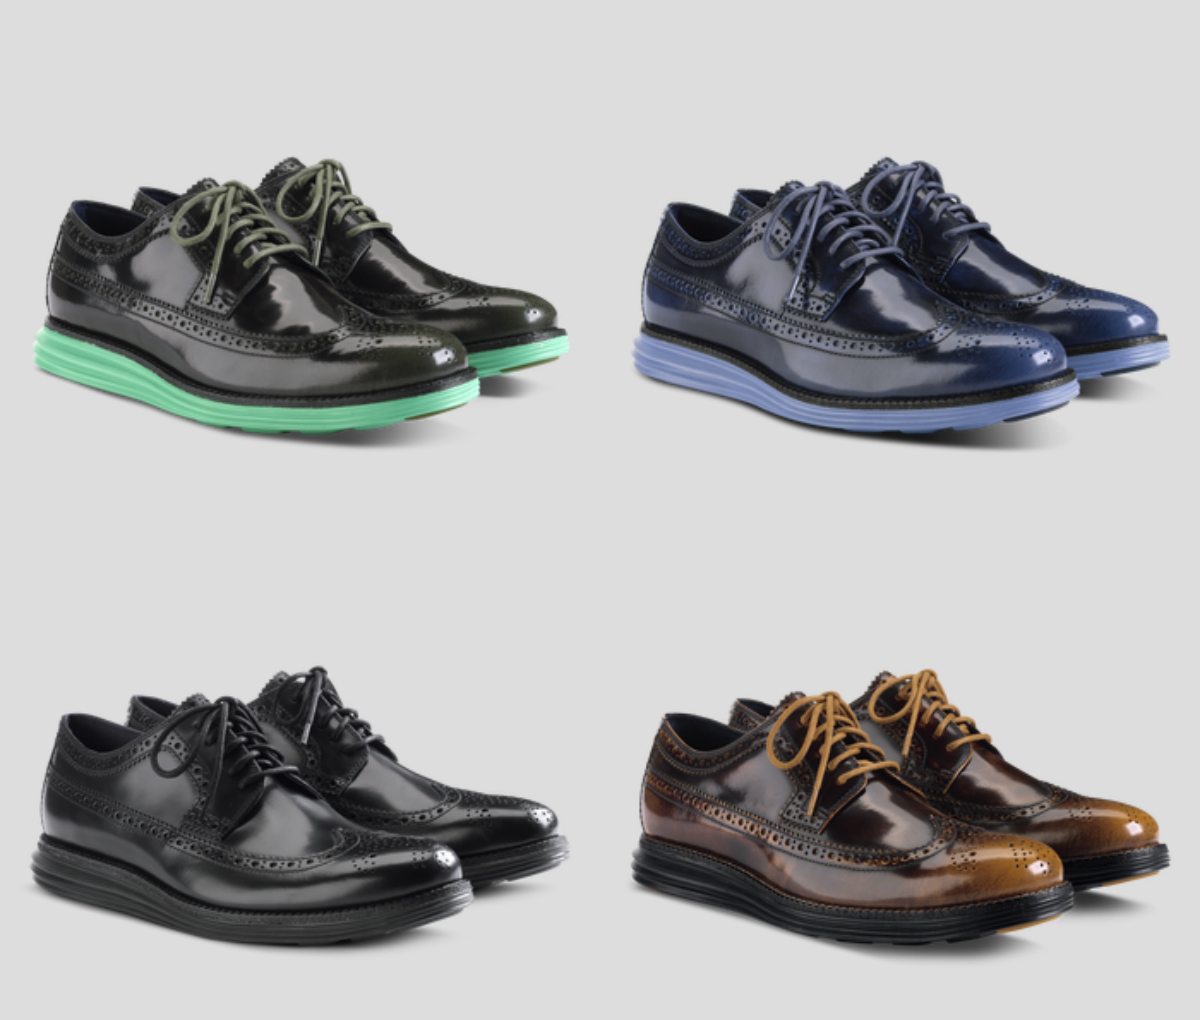 62b1c0090ca Cole Haan LunarGrand: The Very Grand Wingtips | The Confused Dasher